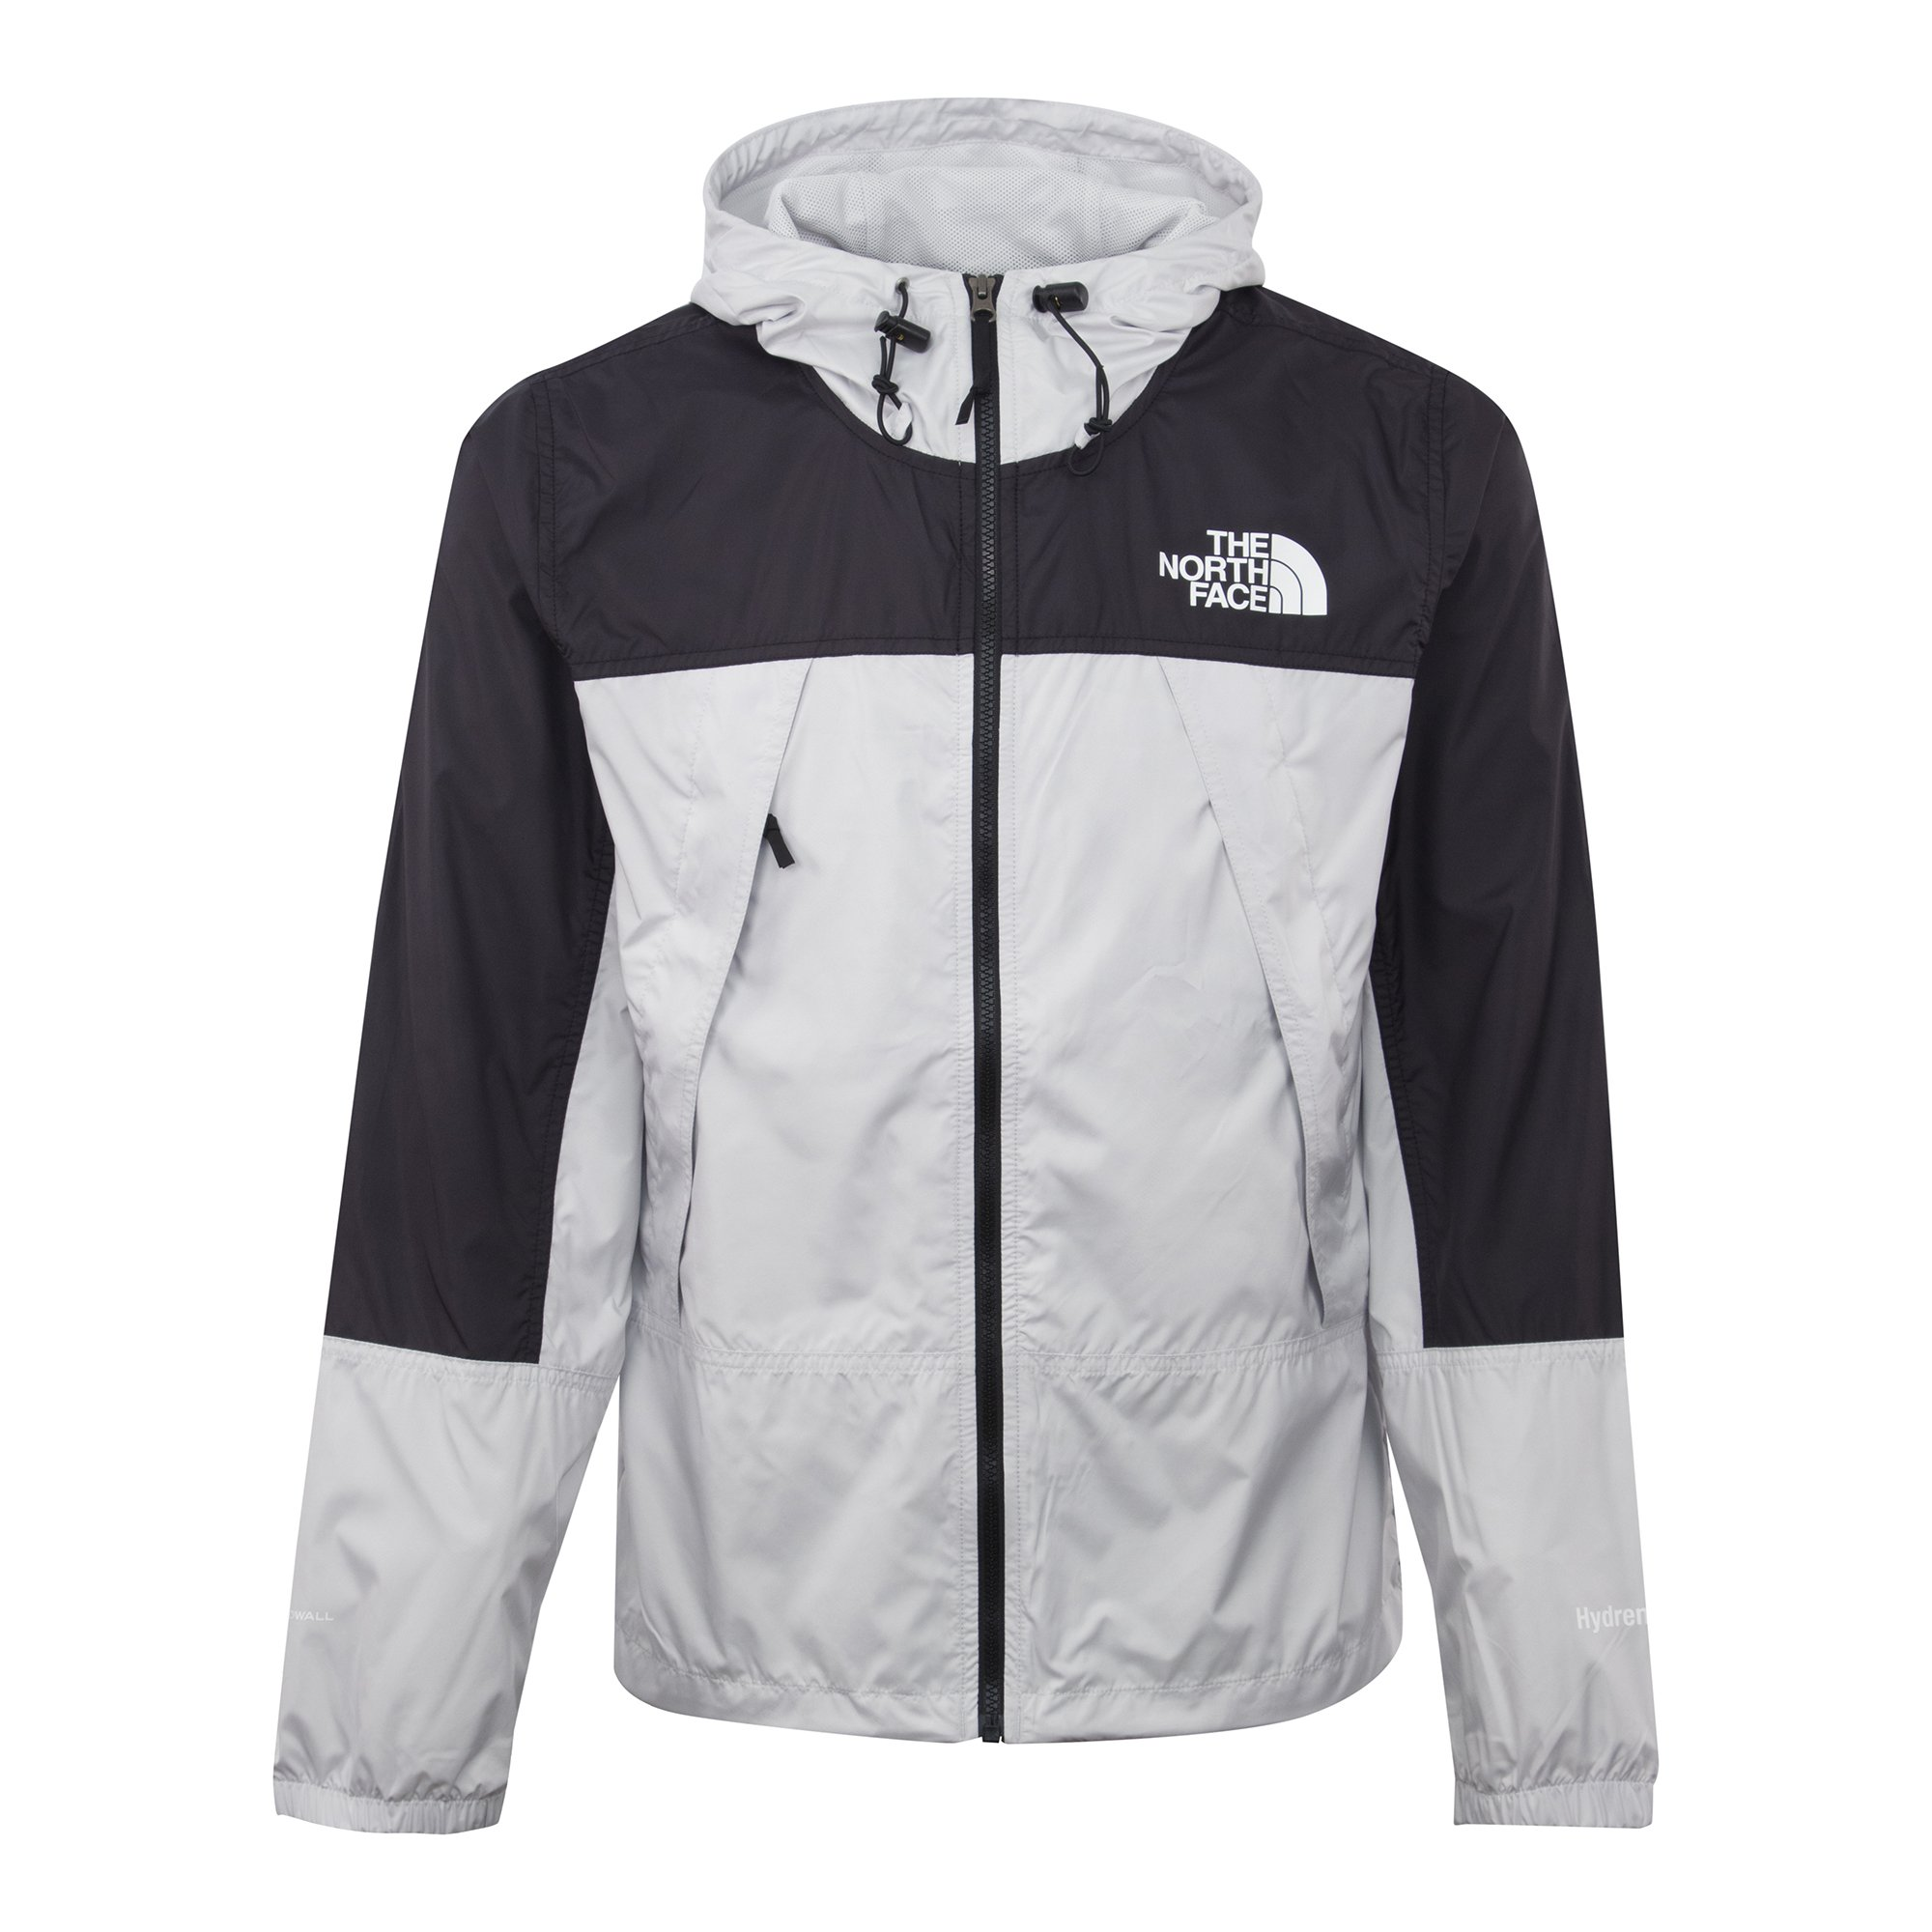 The North Face Linings HYDRENALINE WIND JACKET SILVER